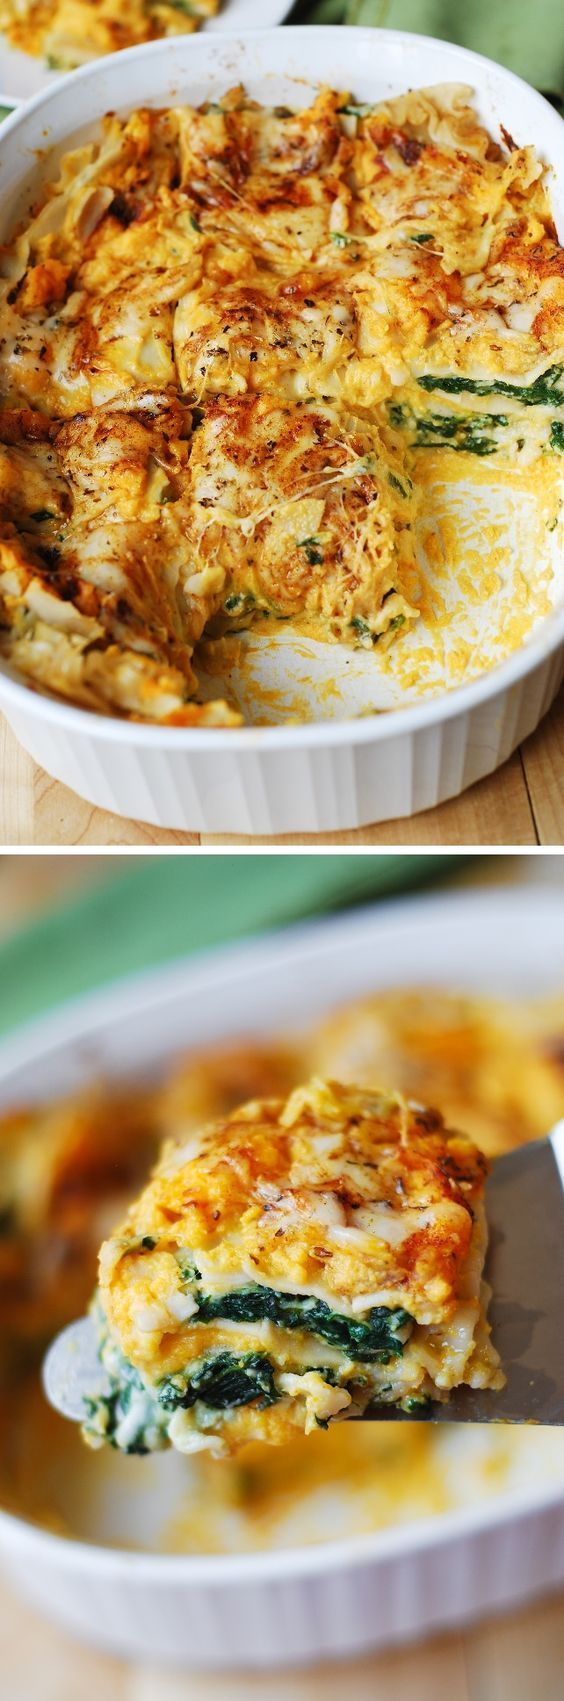 28 healthy winter recipes to start your new years off right 26 butternut squash and spinach lasagna forumfinder Choice Image